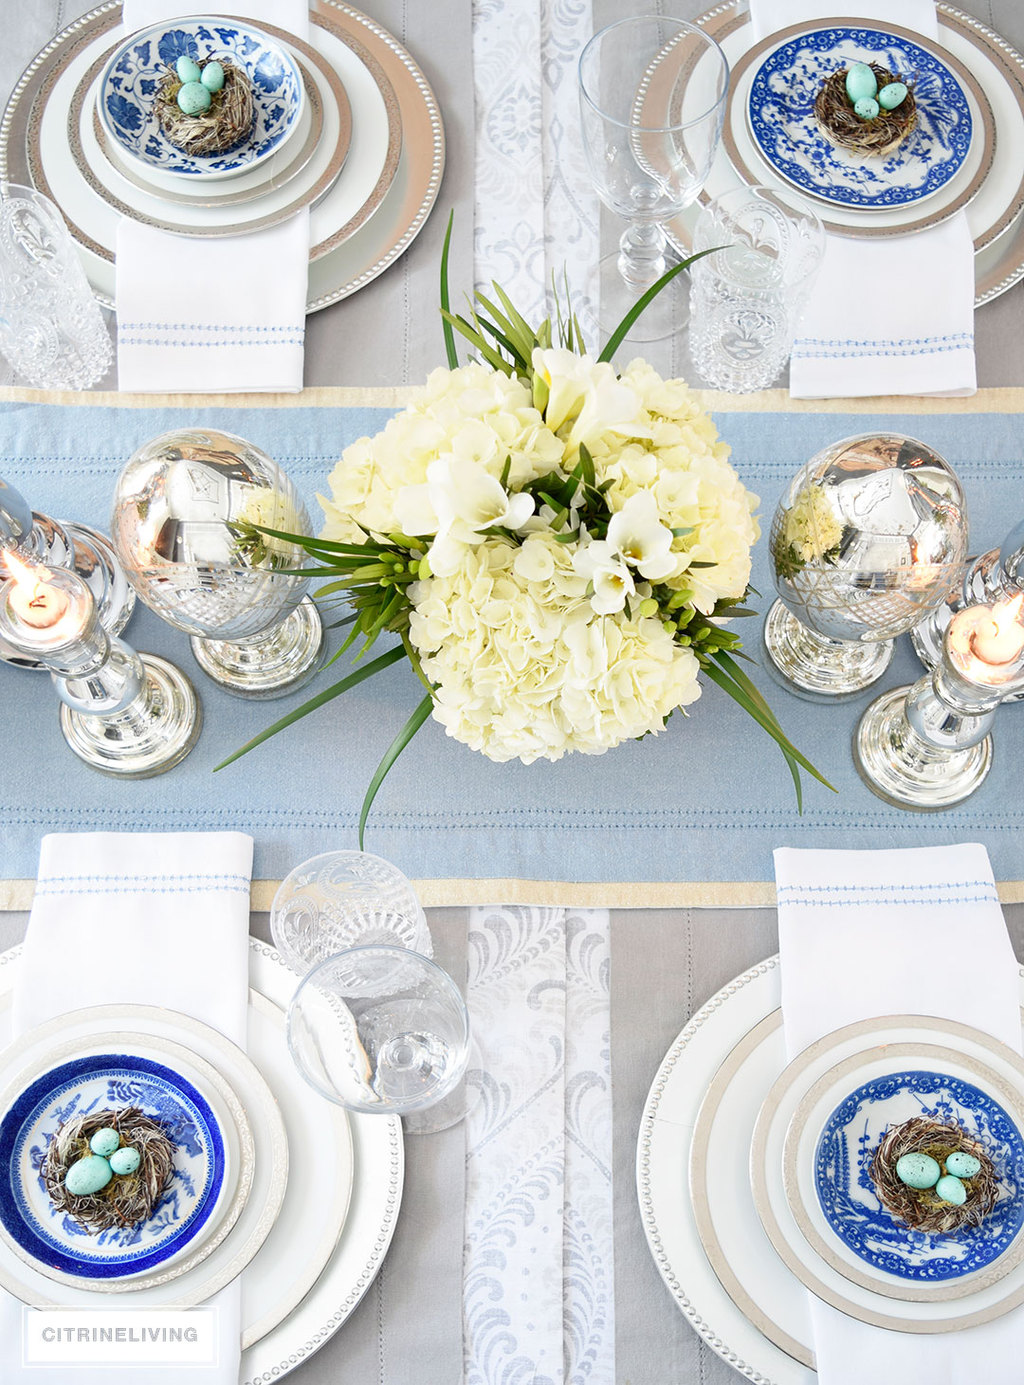 A gorgeous Easter tablescape with mercury glass accents and a mix of silver and white with blue and white china. Fresh and beautiful white hydrangeas are the perfect centerpiece.